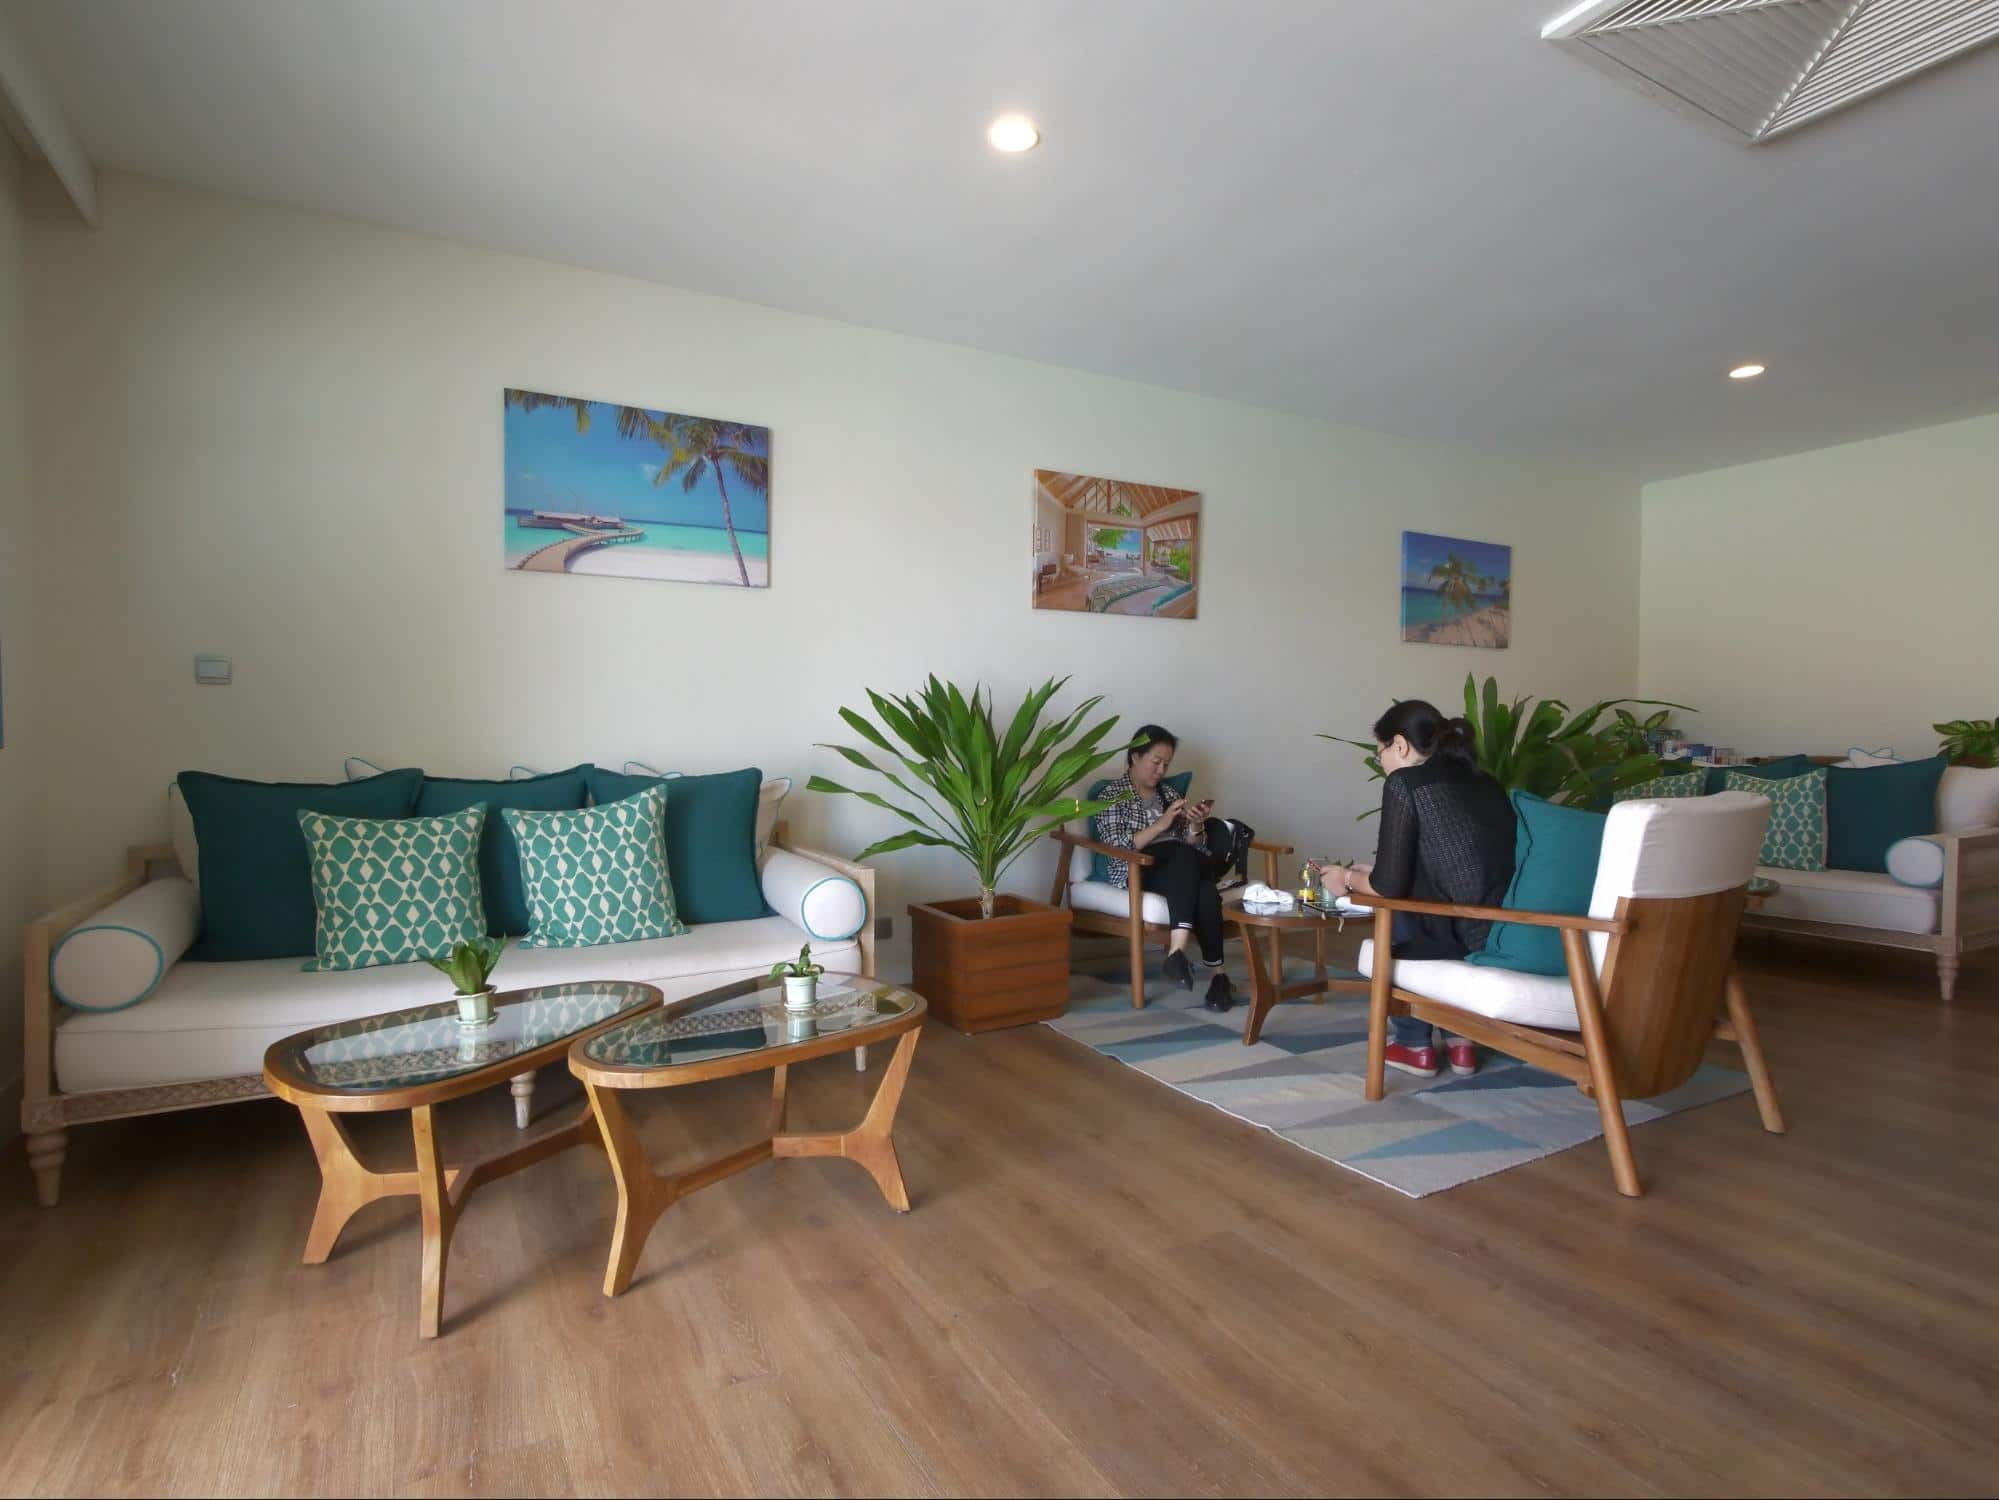 Milaidhoo airport lounge in Male